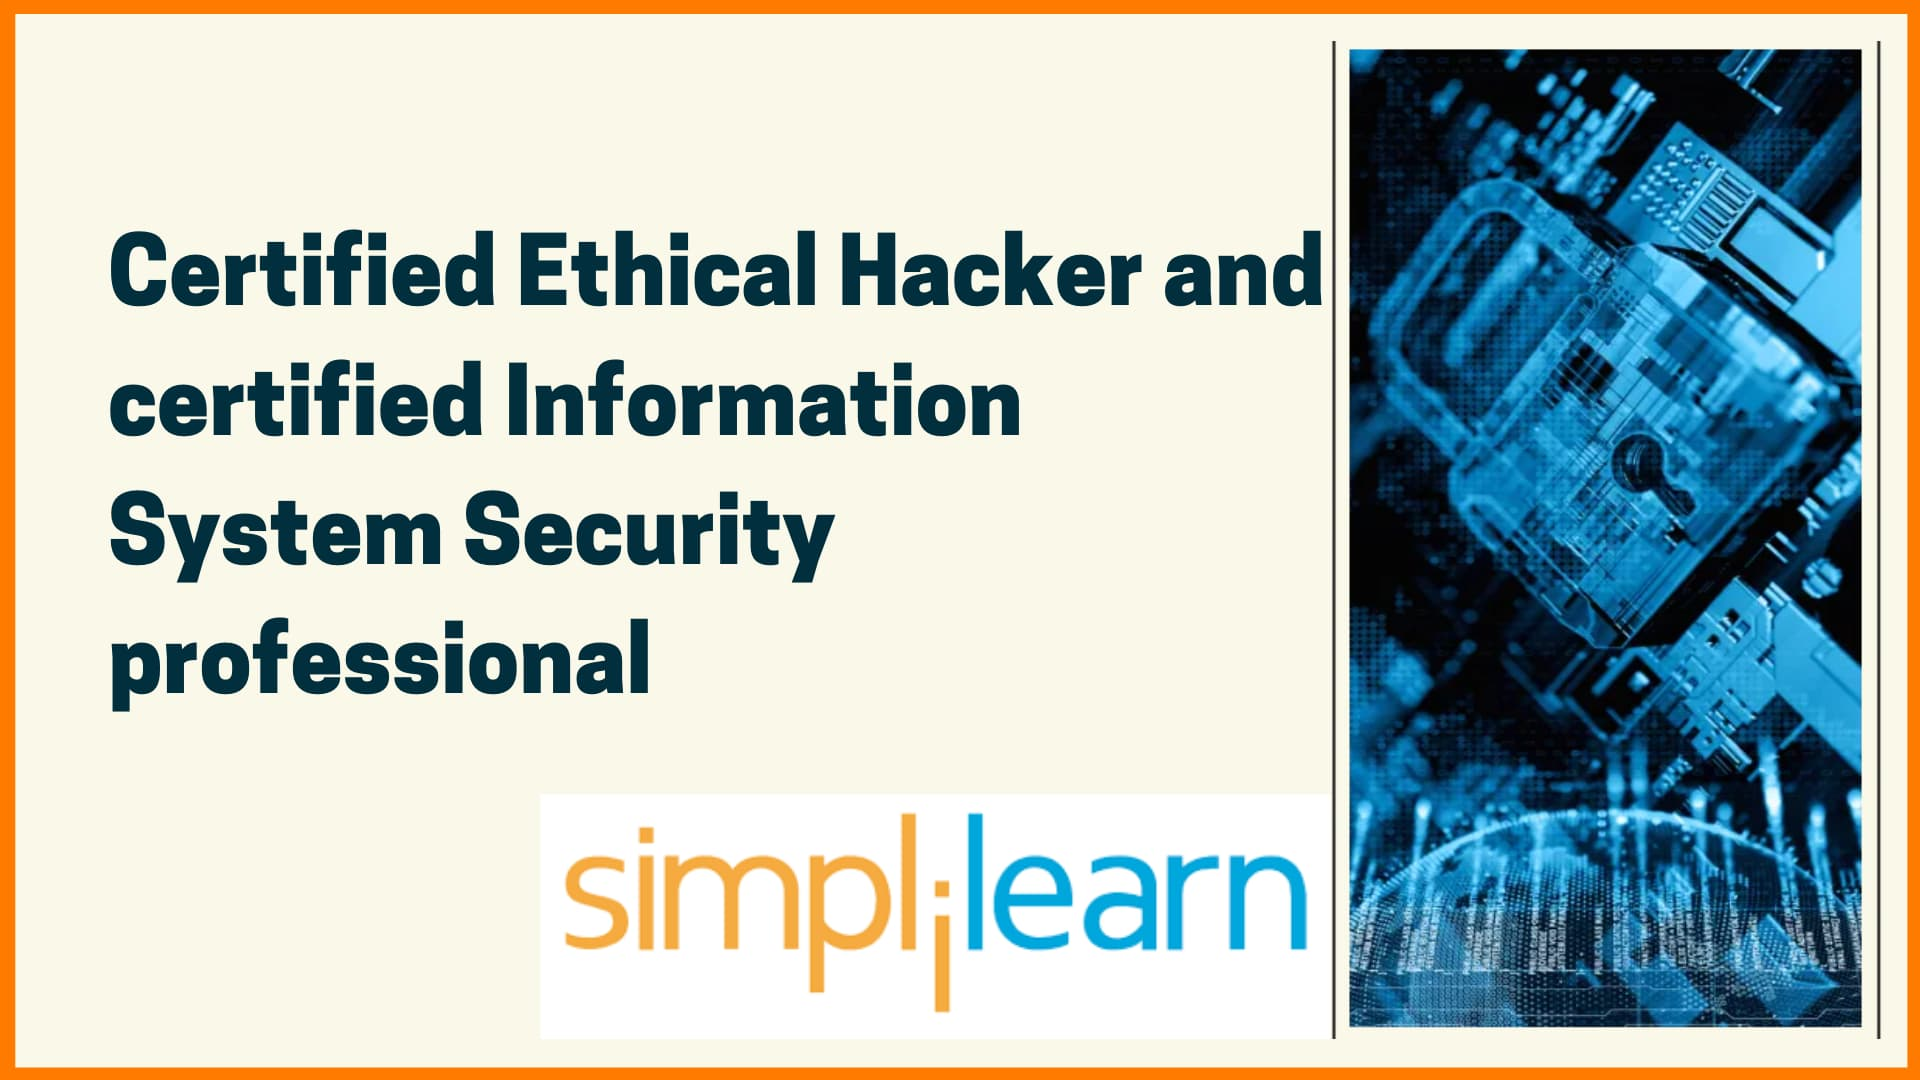 Simplilearn Course on Cybersecurity- Top cybersecurity course